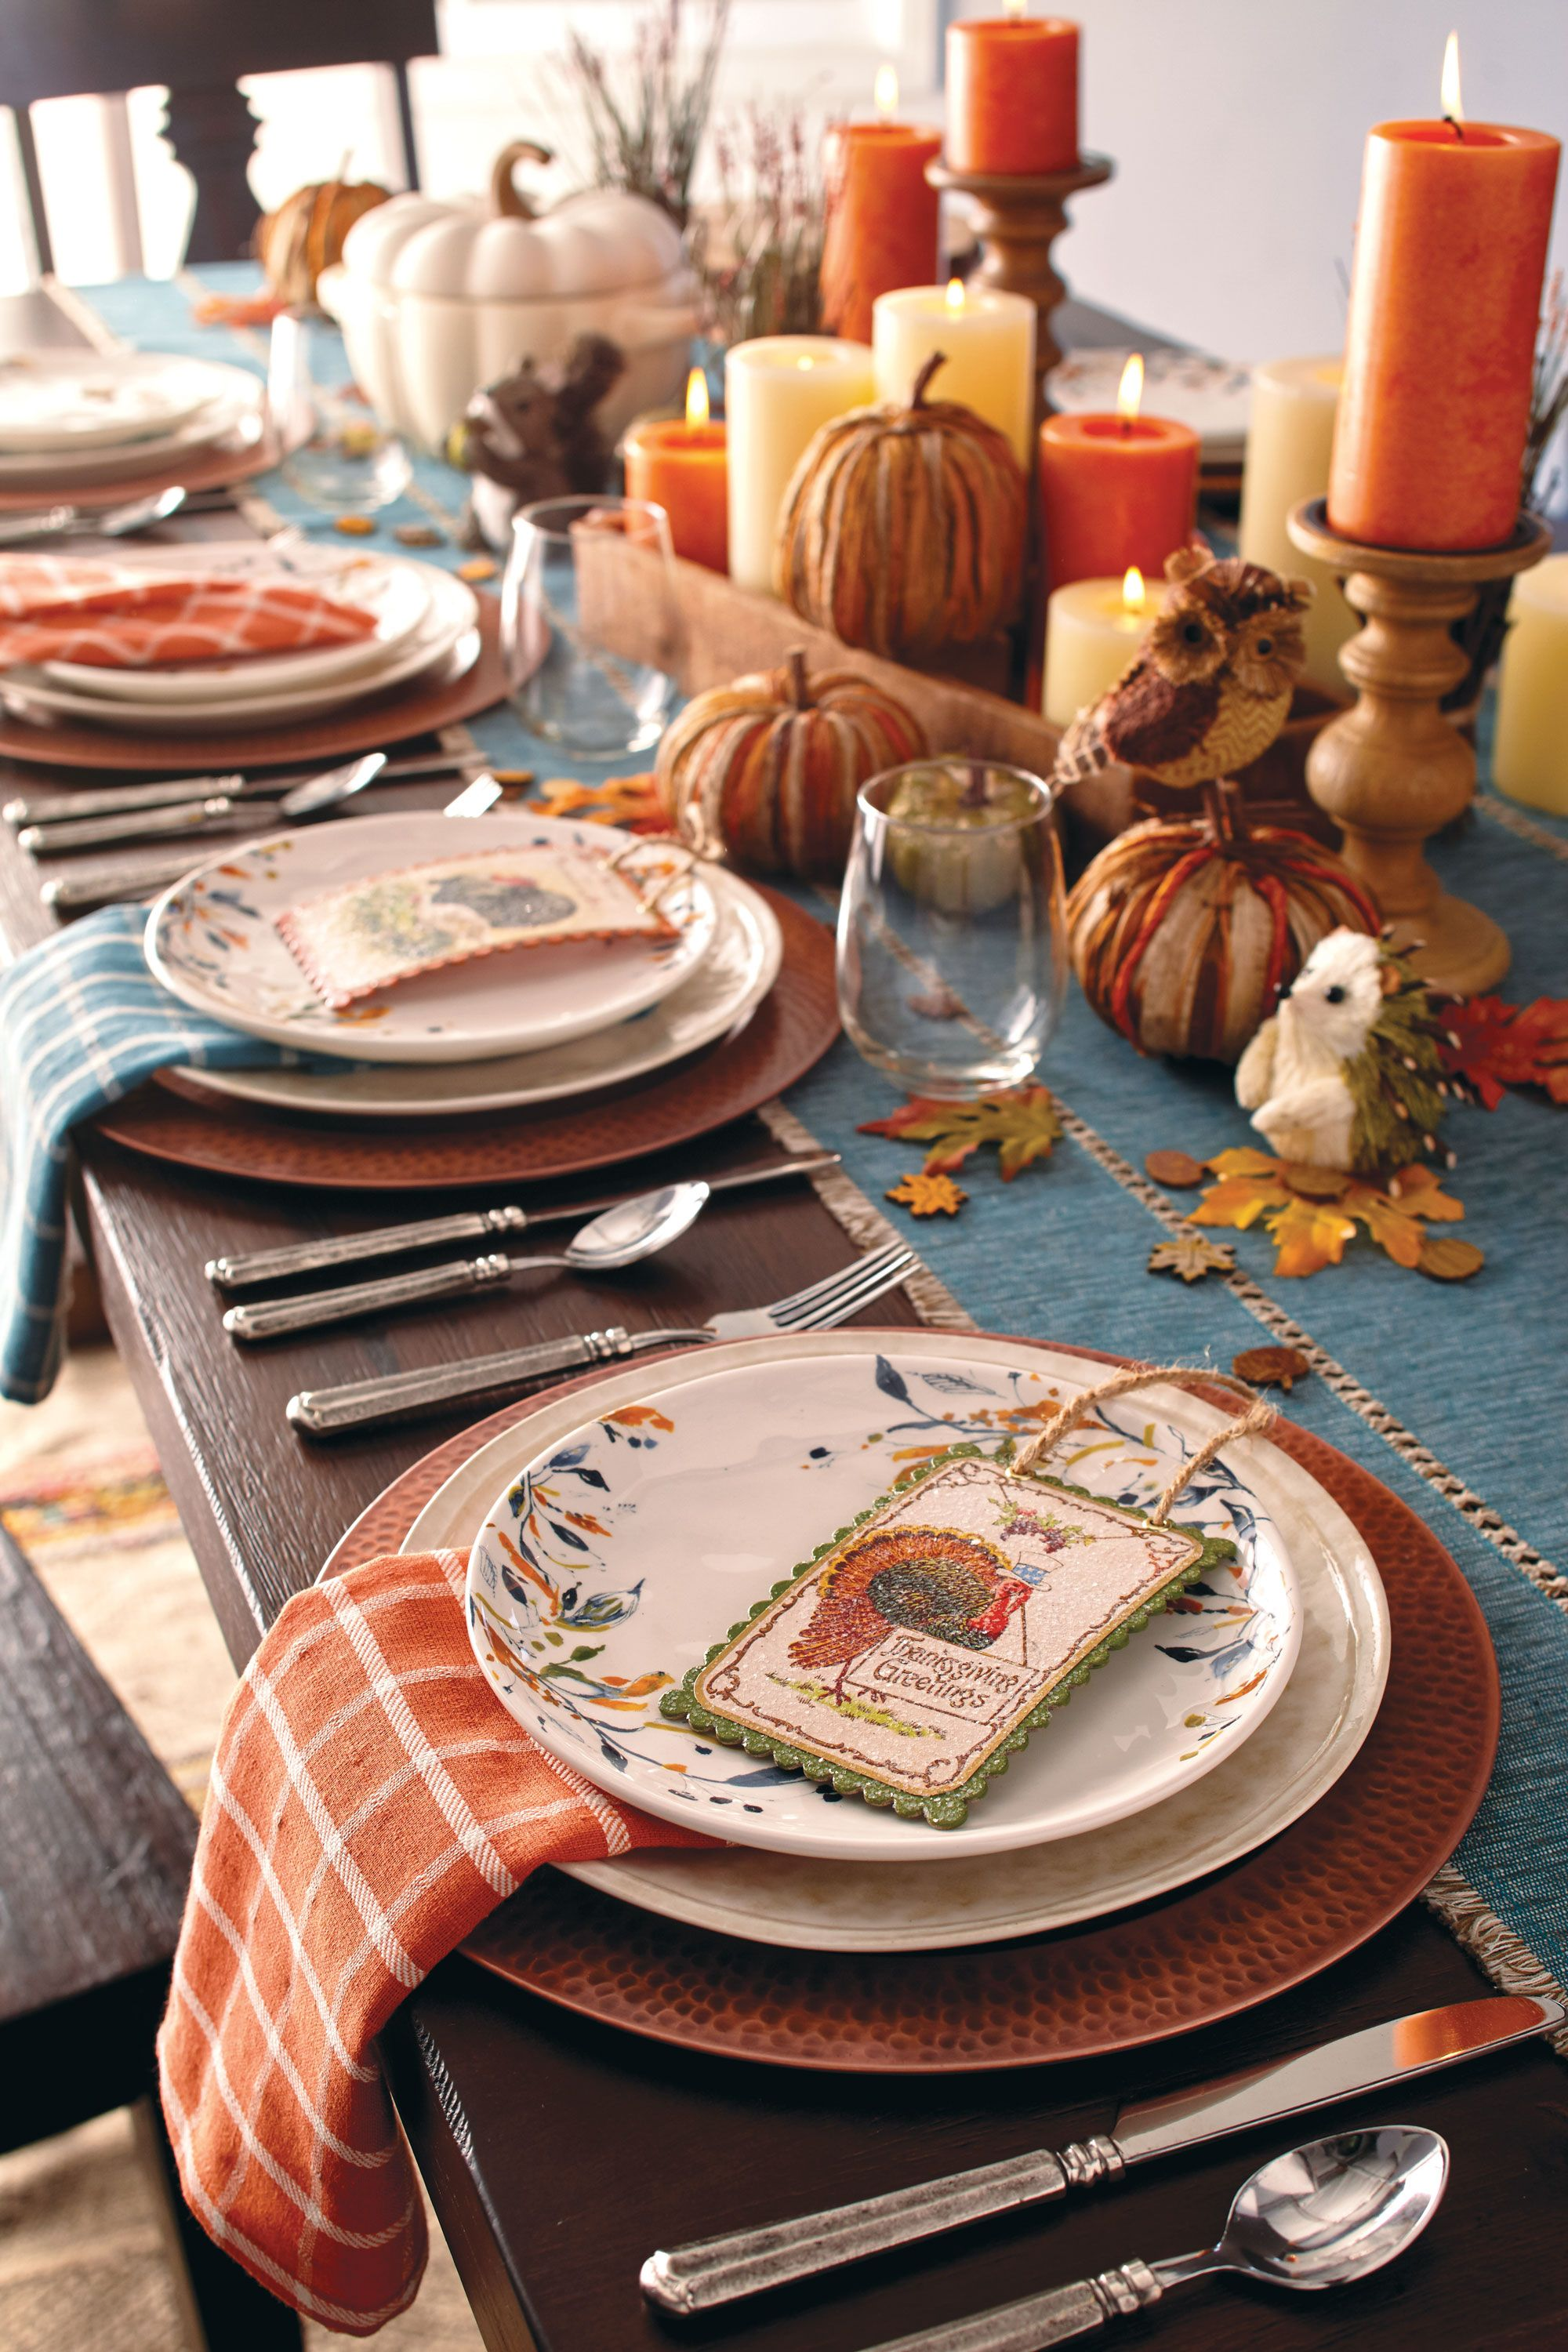 Make It A Happy Thanksgiving With Our Step By Step Guide For A Seamless Ga Thanksgiving Dinner Table Decorations Dinner Table Decor Thanksgiving Table Settings